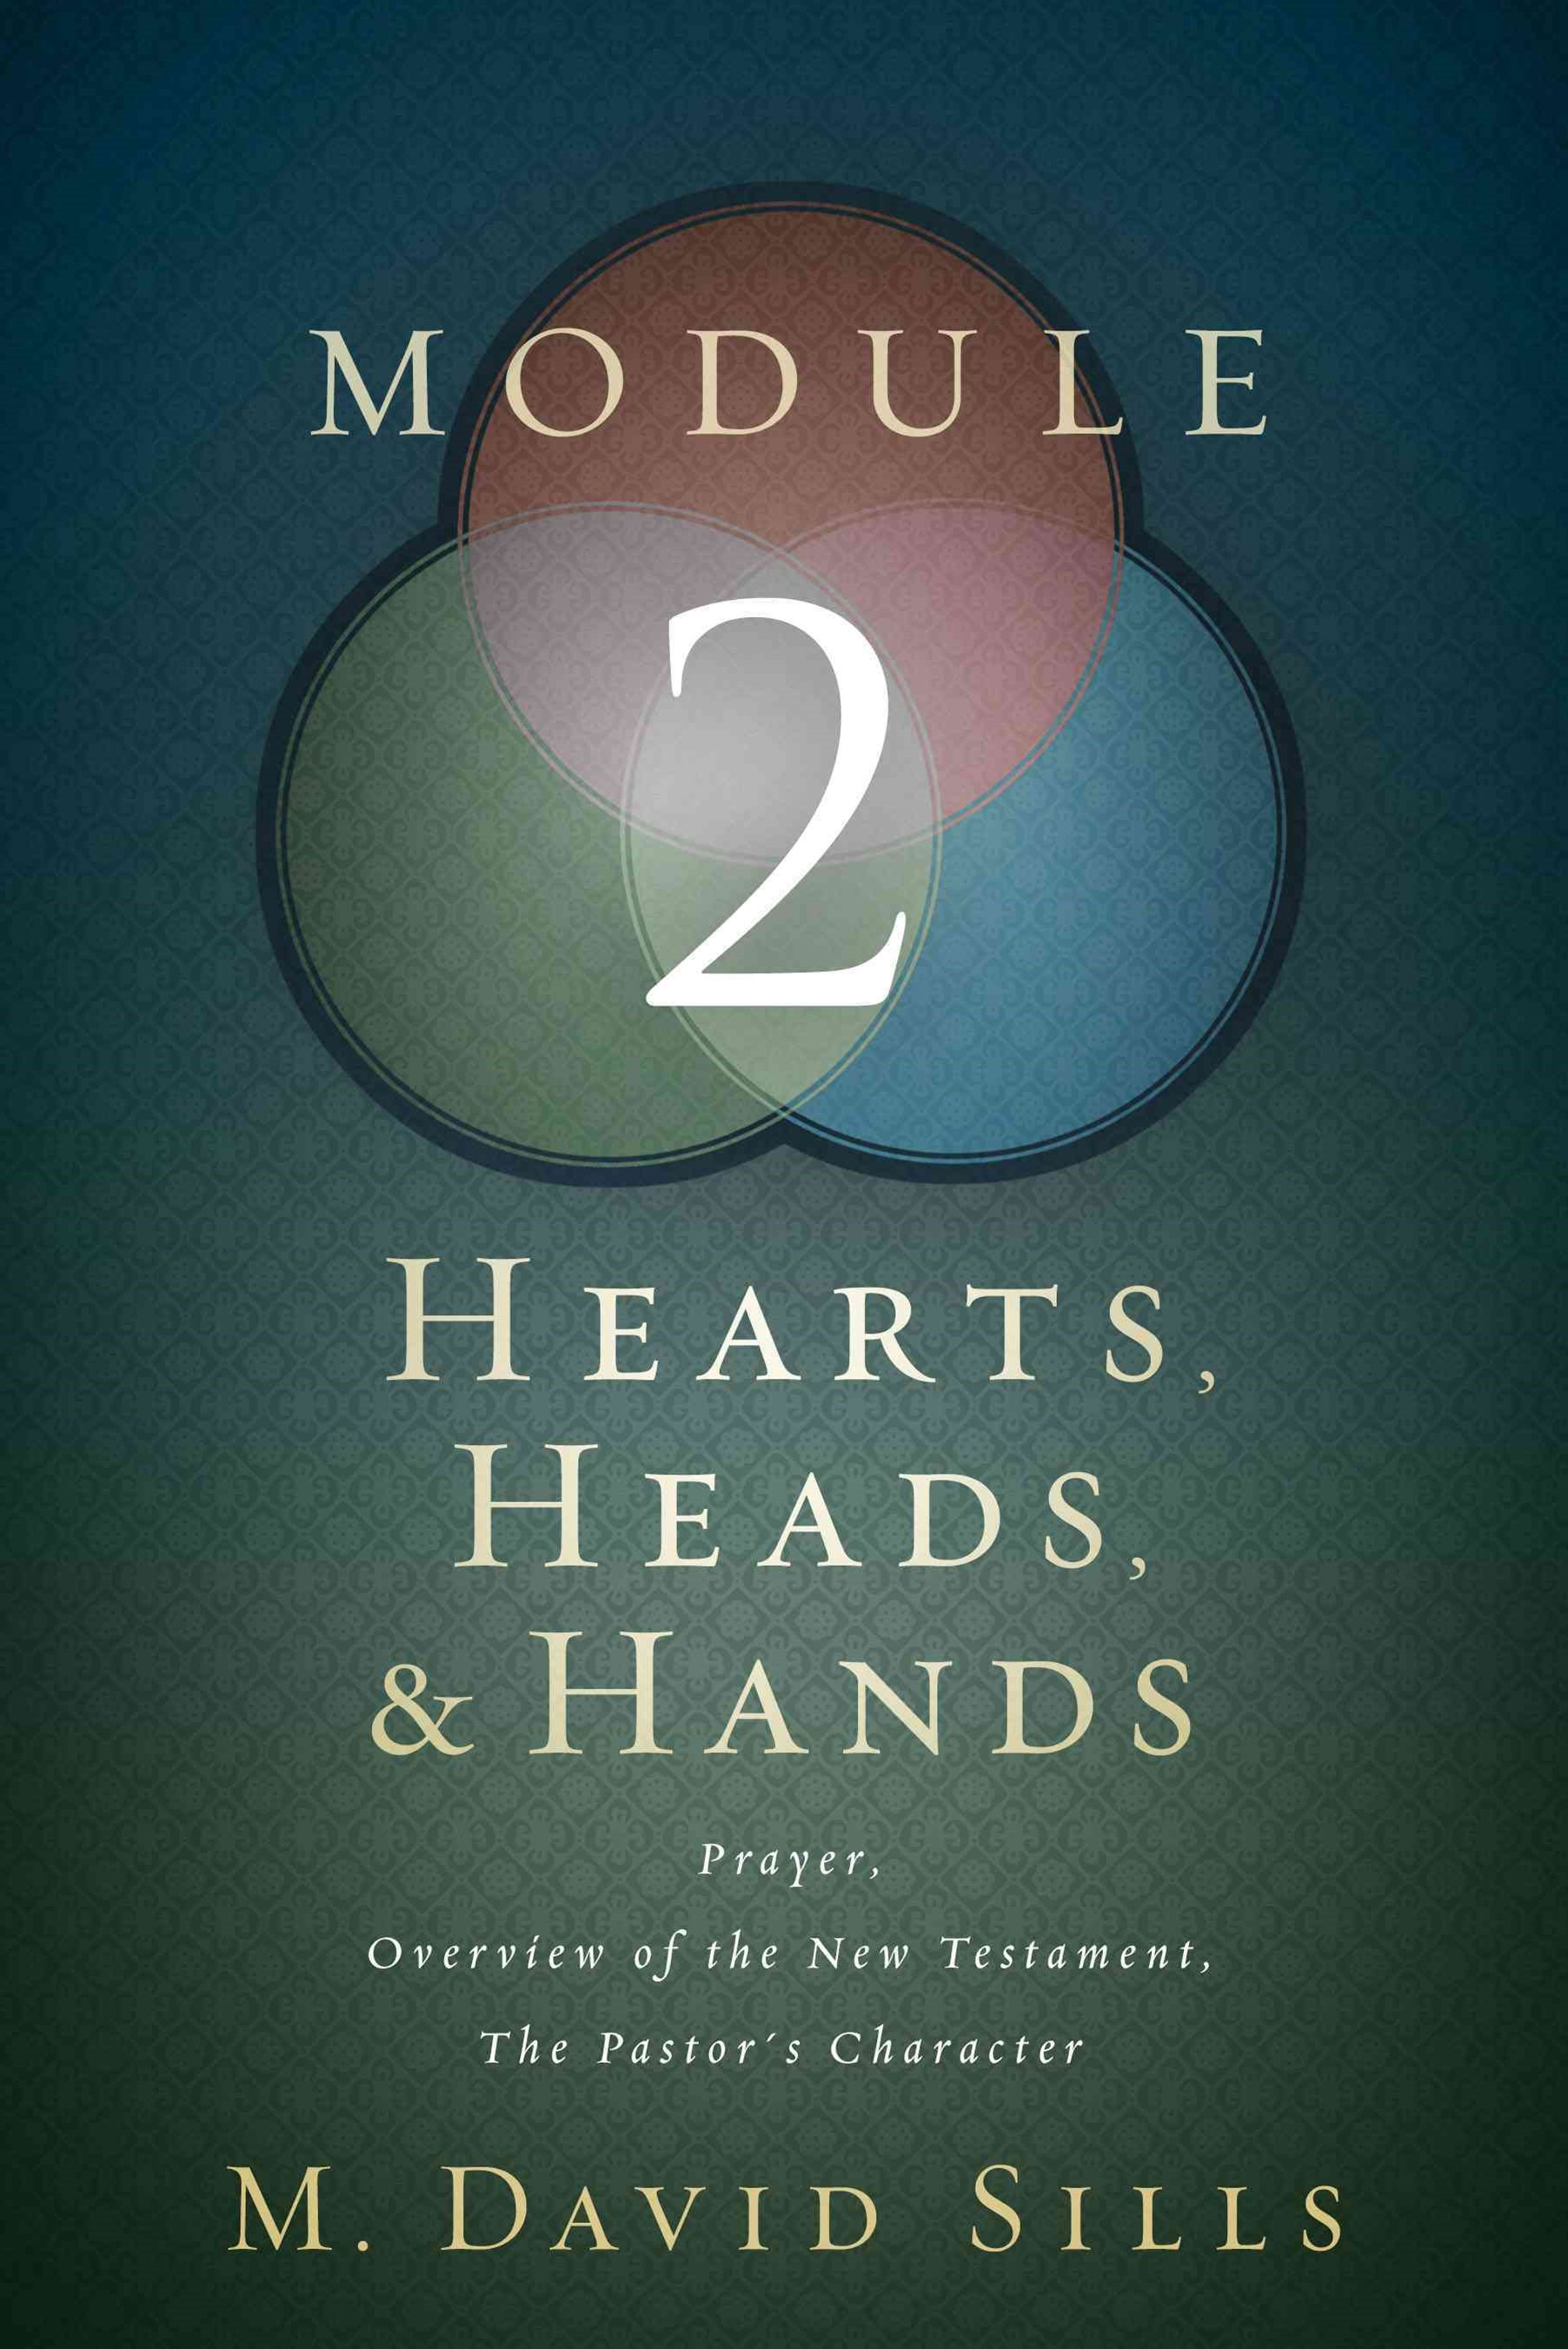 Hearts, Heads, and Hands- Module 2